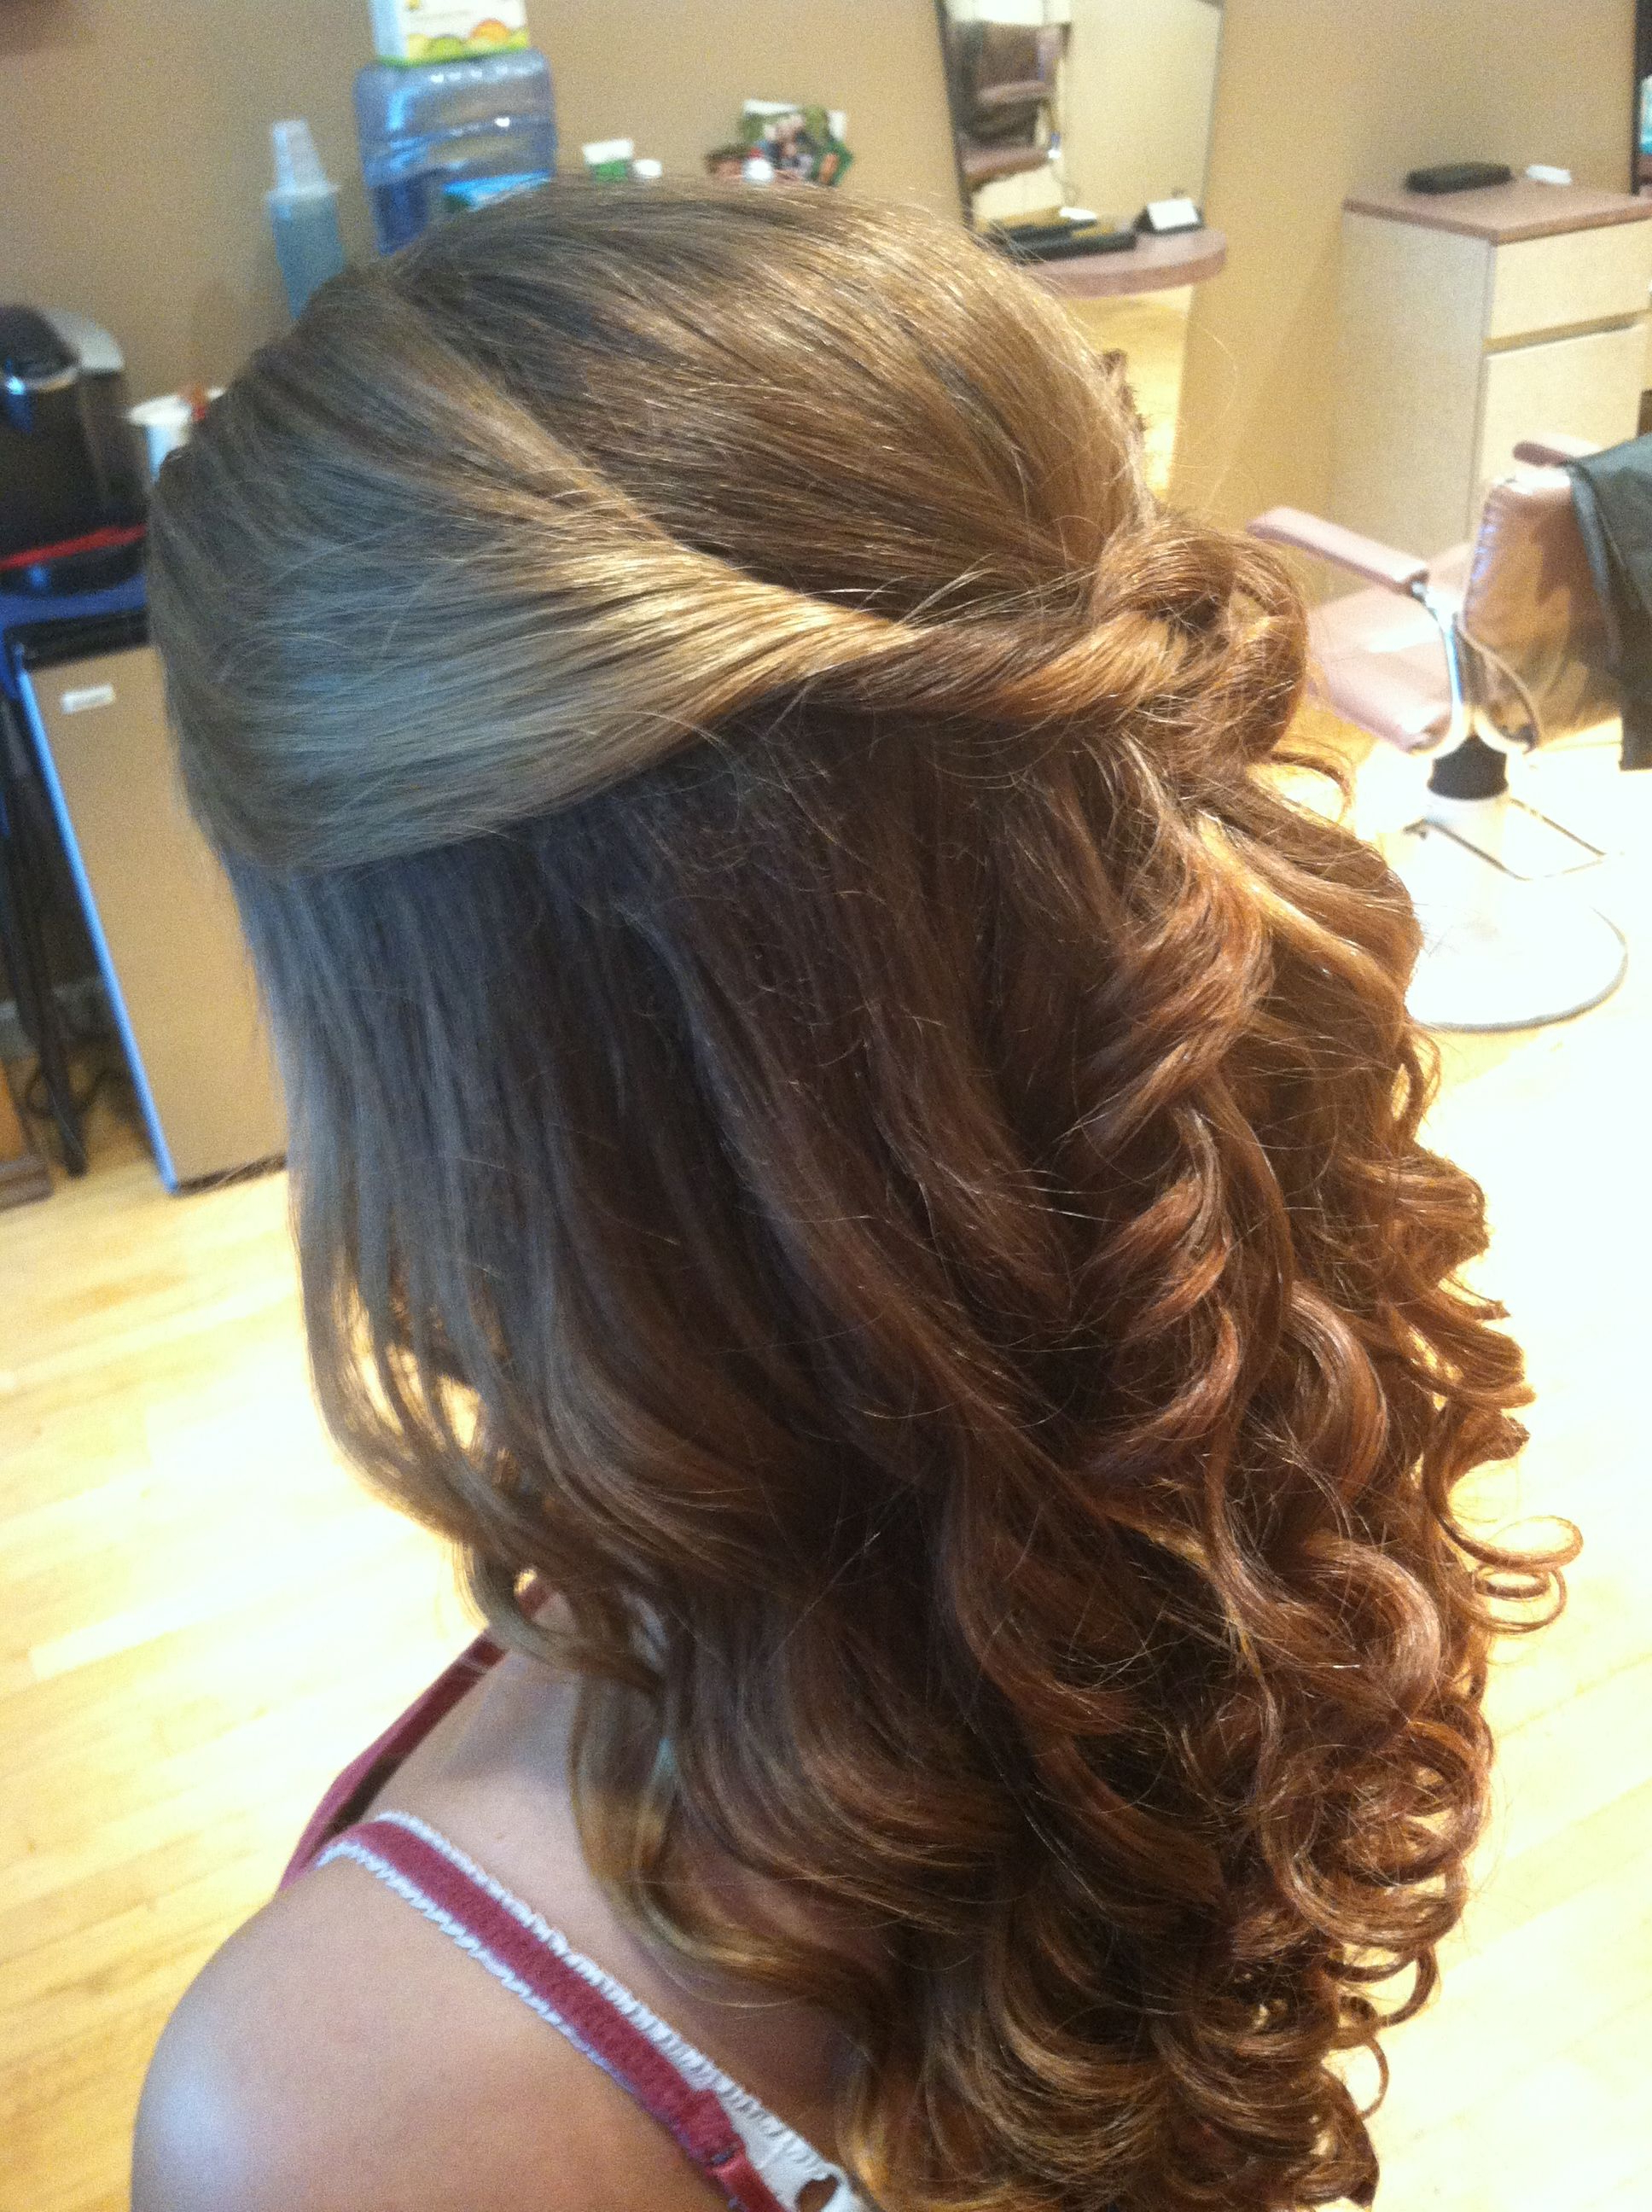 Curled With A Wand, Knotted Half Up With Cascading Spiral Curls Pertaining To Well Liked Curly Knot Sideways Prom Hairstyles (View 5 of 20)